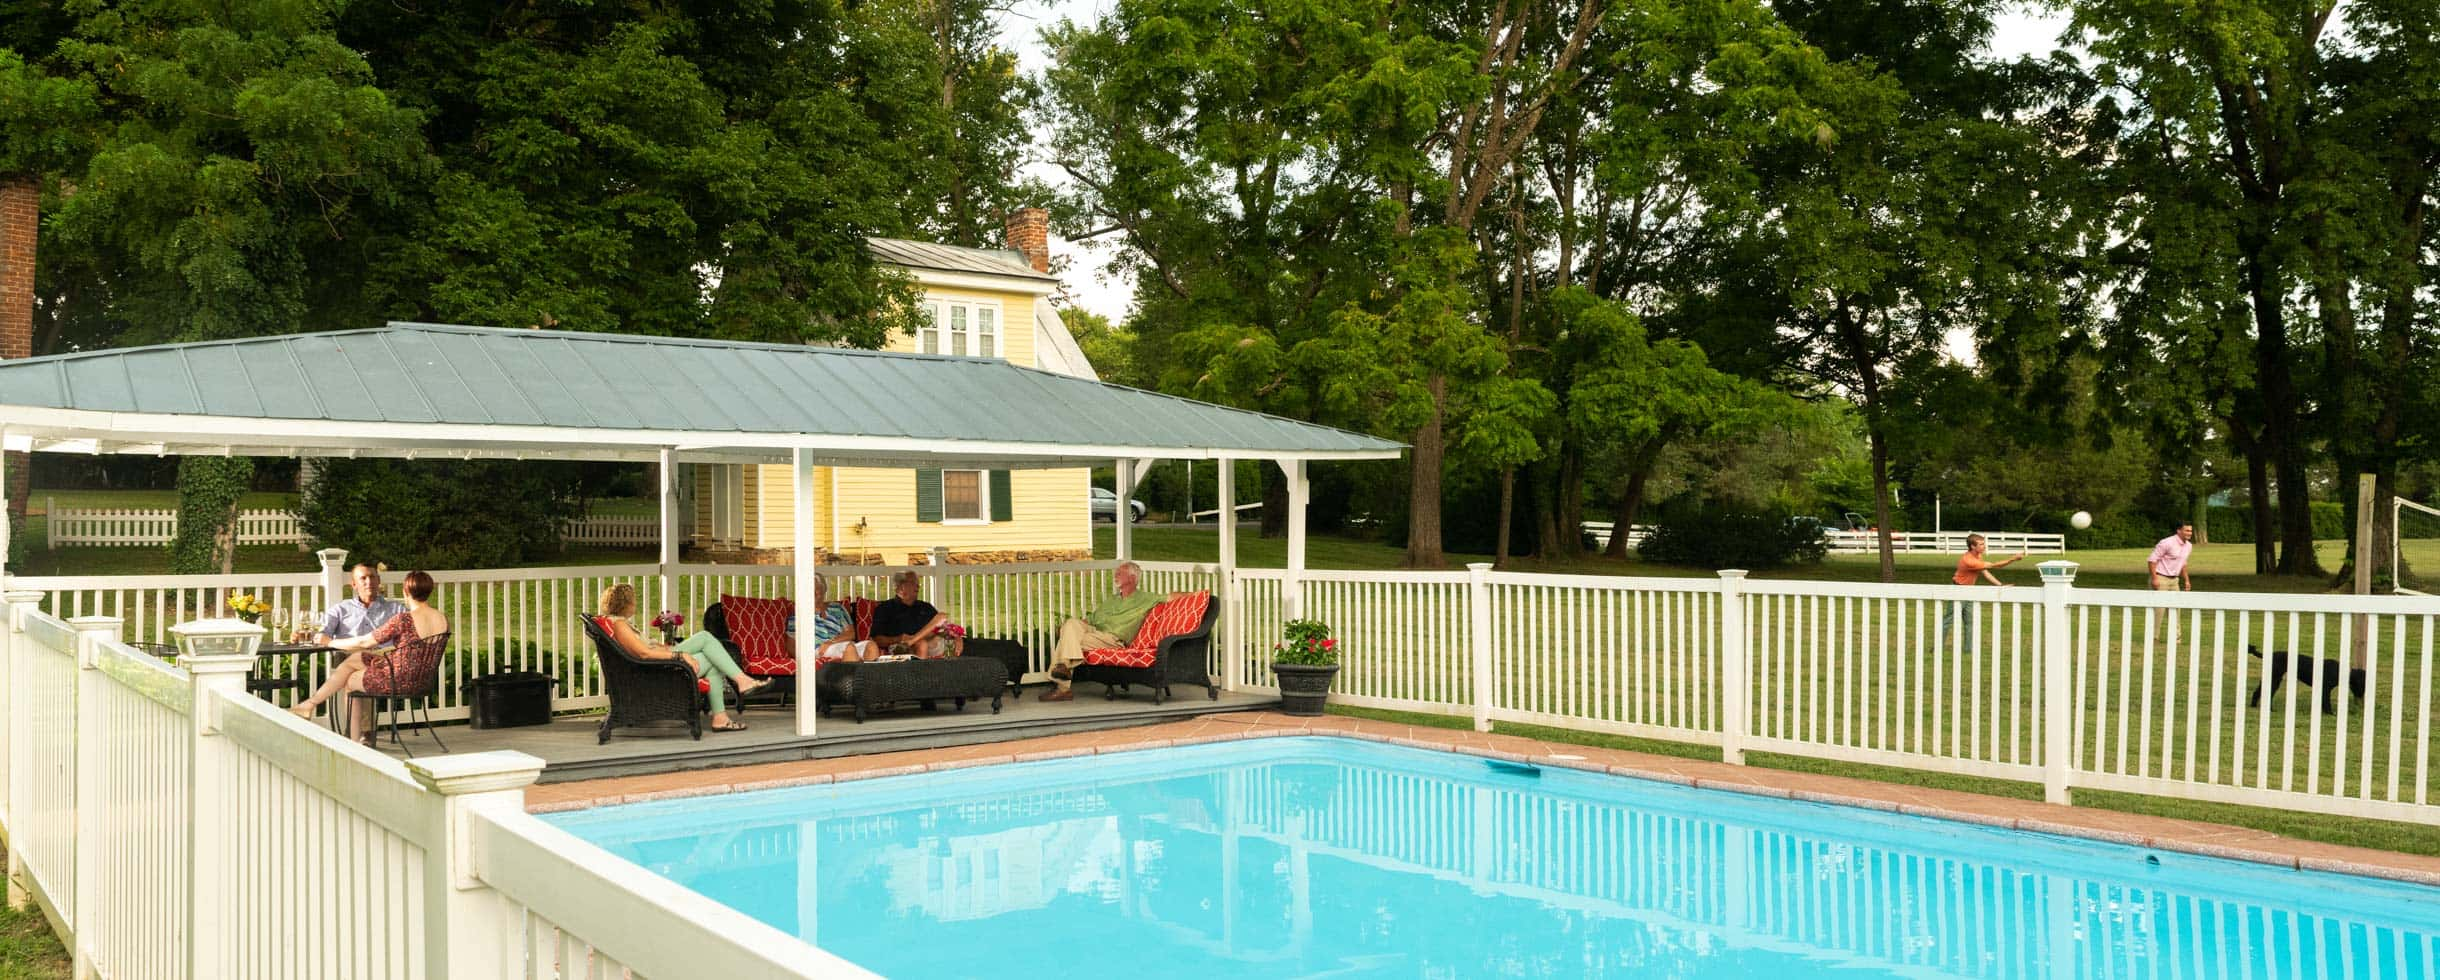 A large pool with a white fence around it, and a covered patio with deck furnature